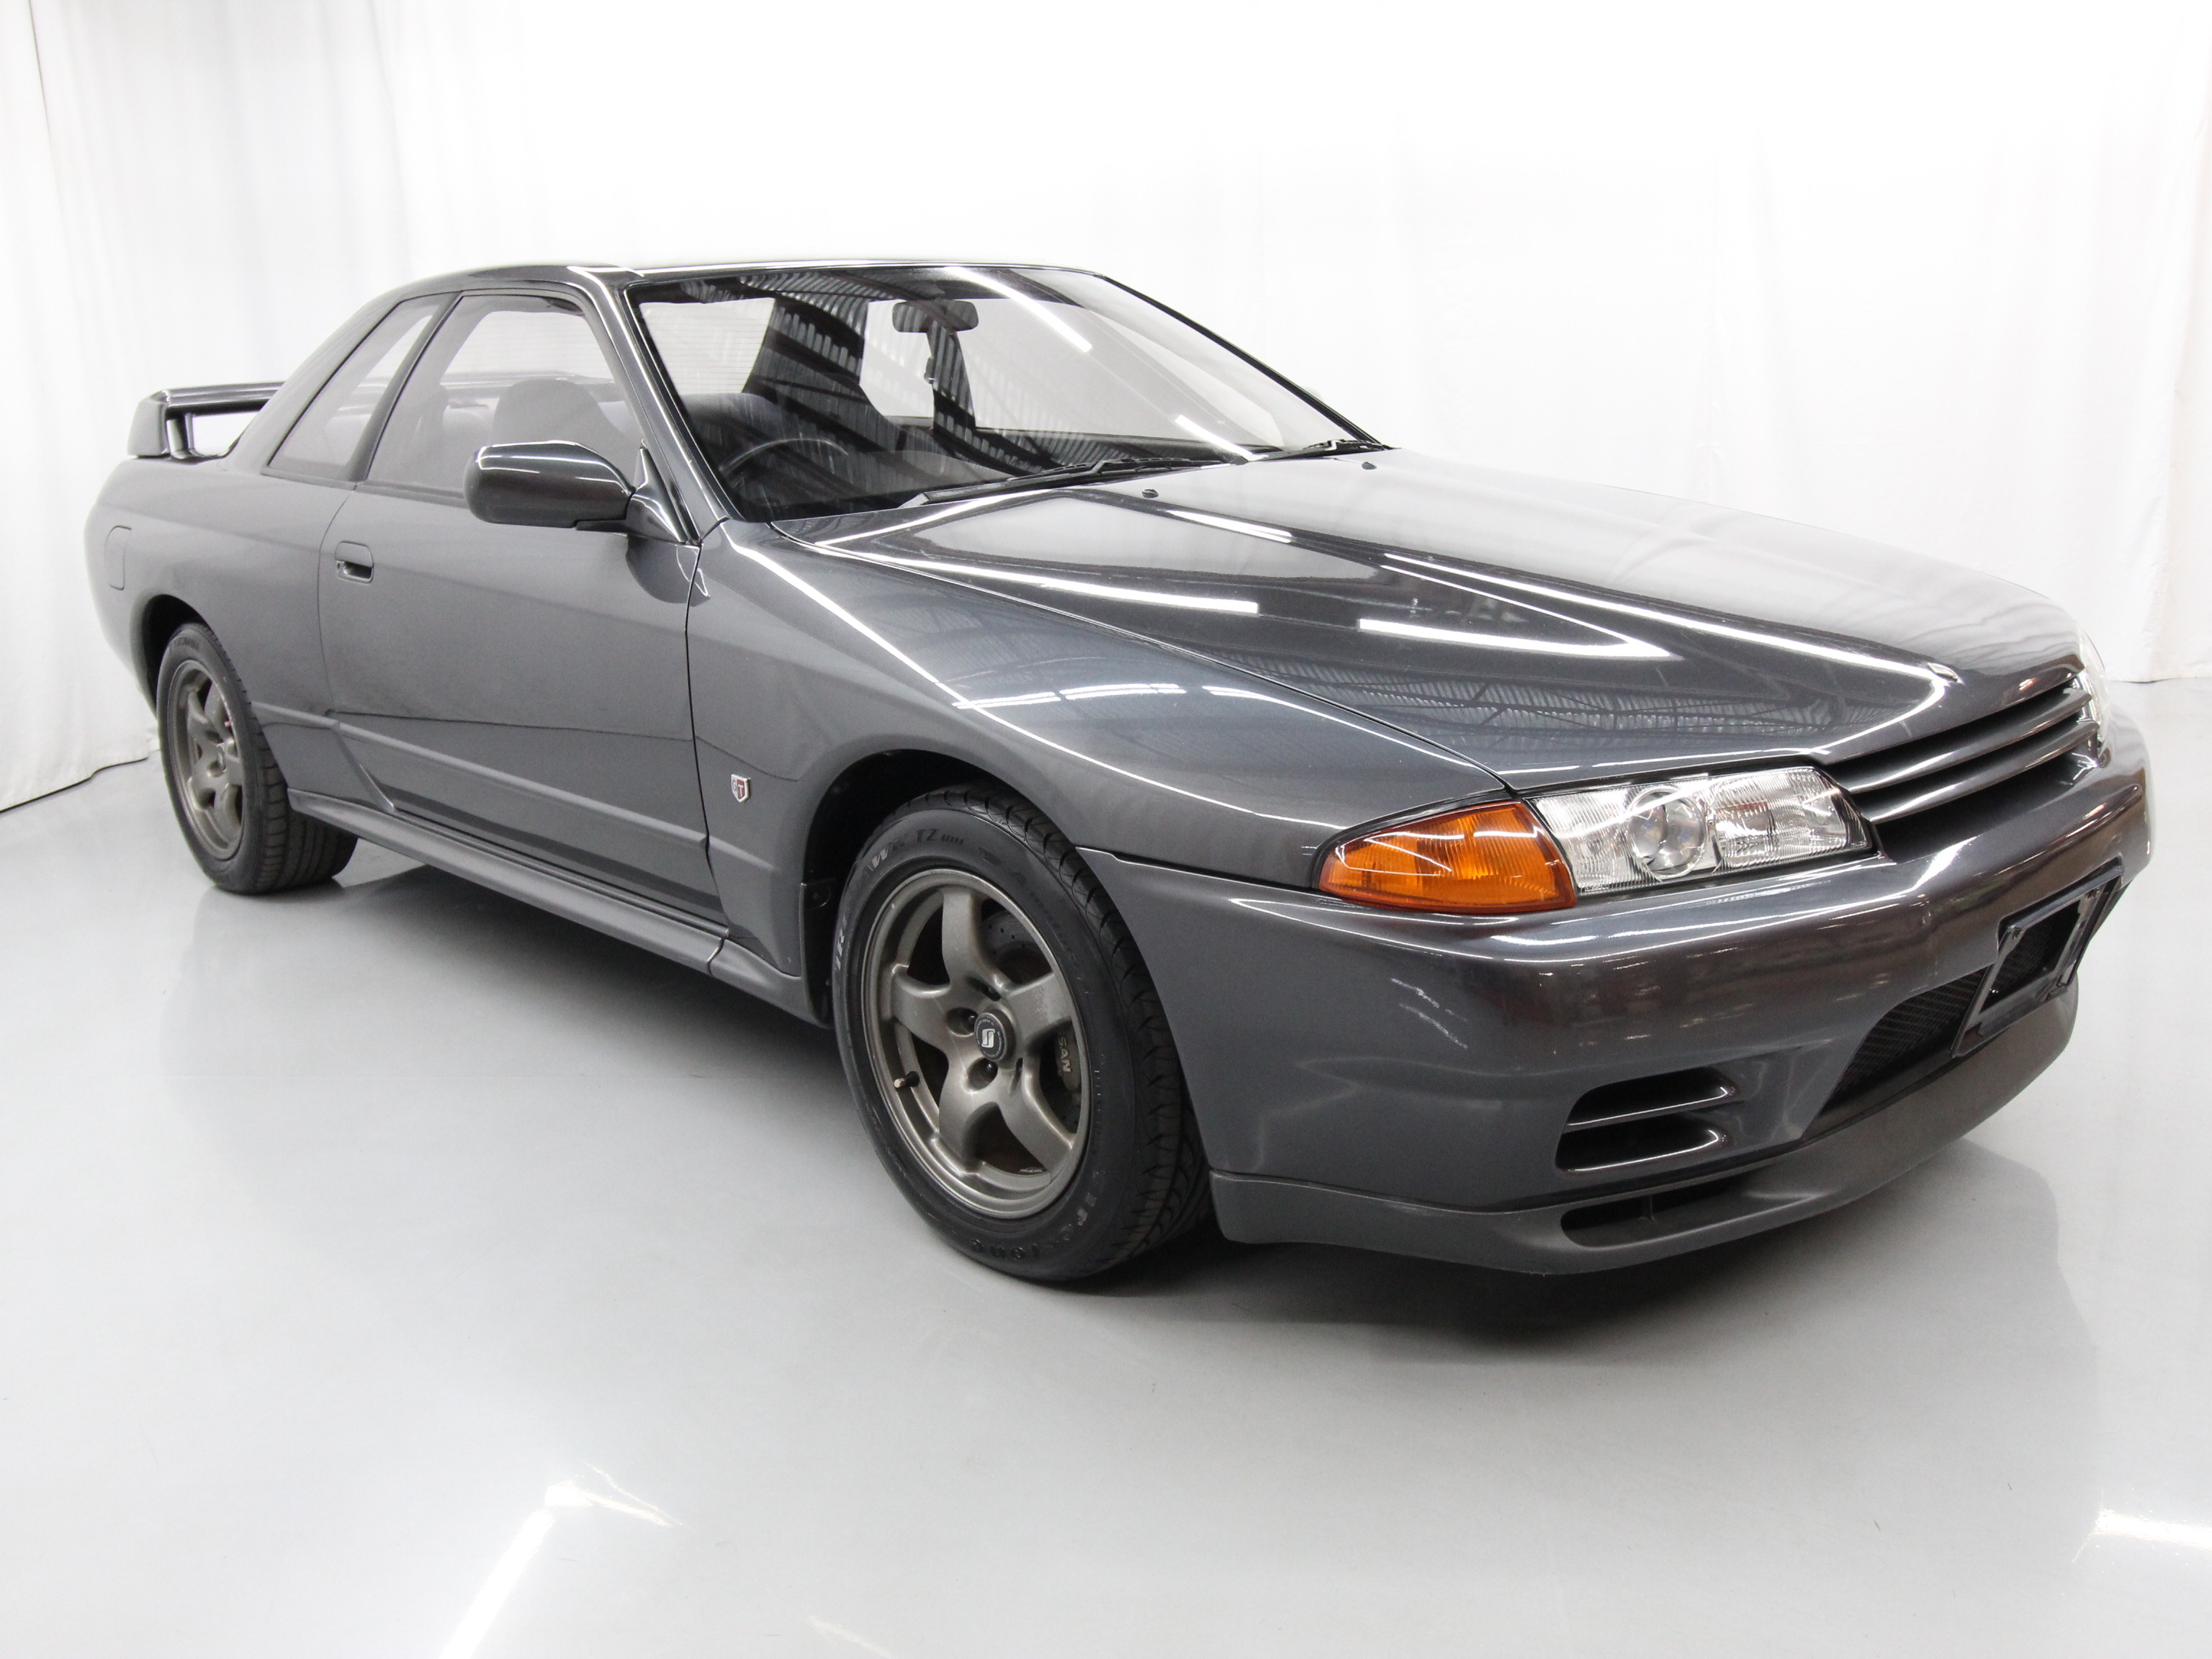 1989 Nissan Skyline GT- R Two-Door